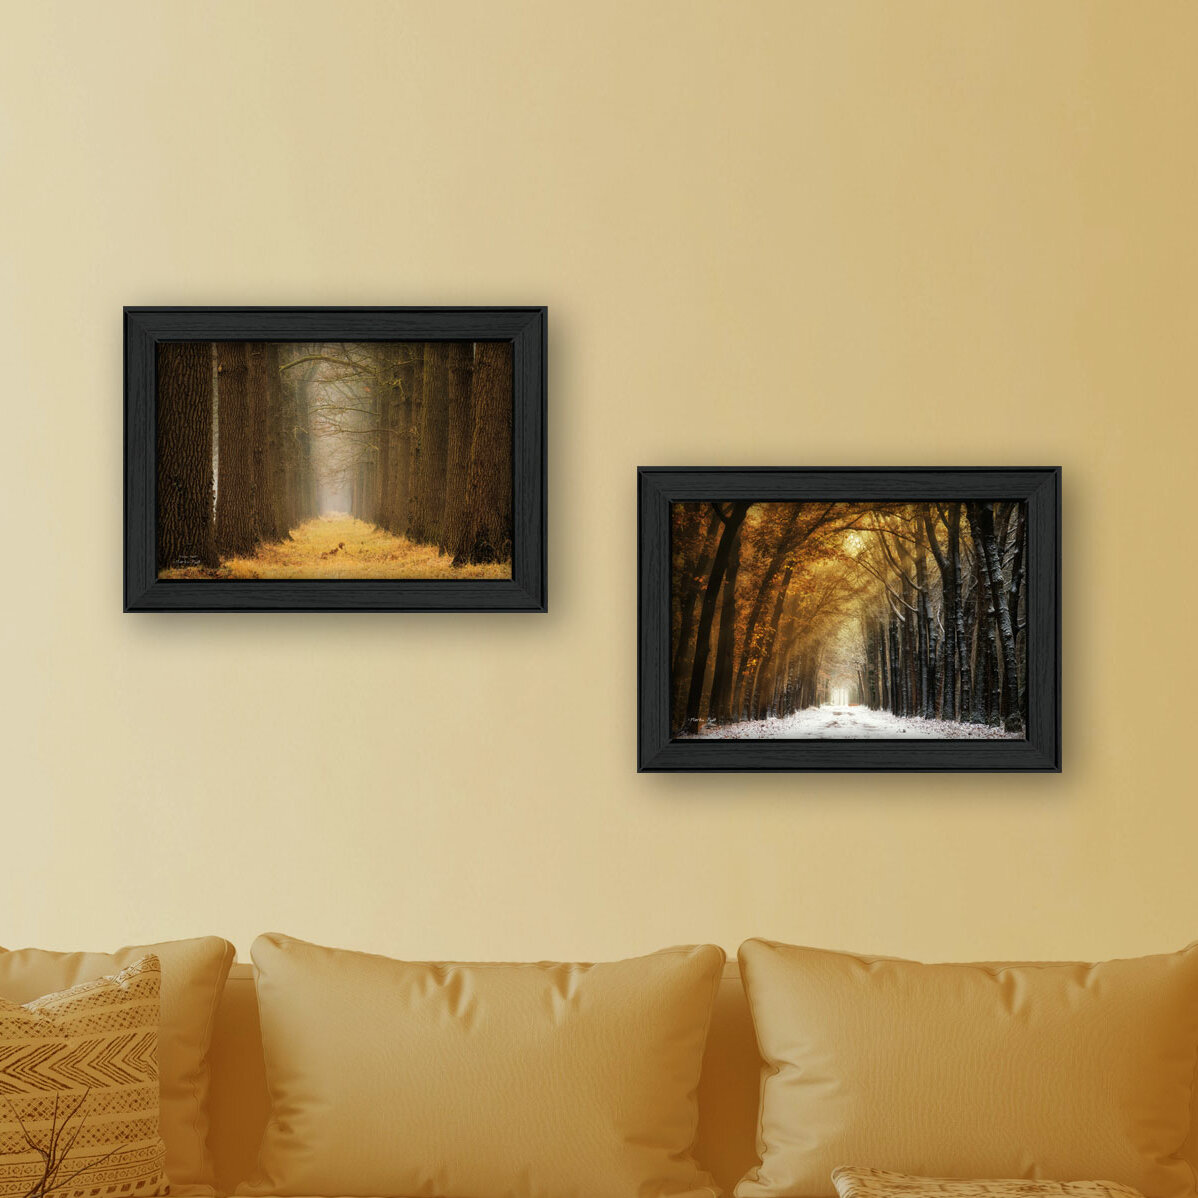 Fancy Framed Metal Wall Art Image Collection - Art & Wall Decor ...